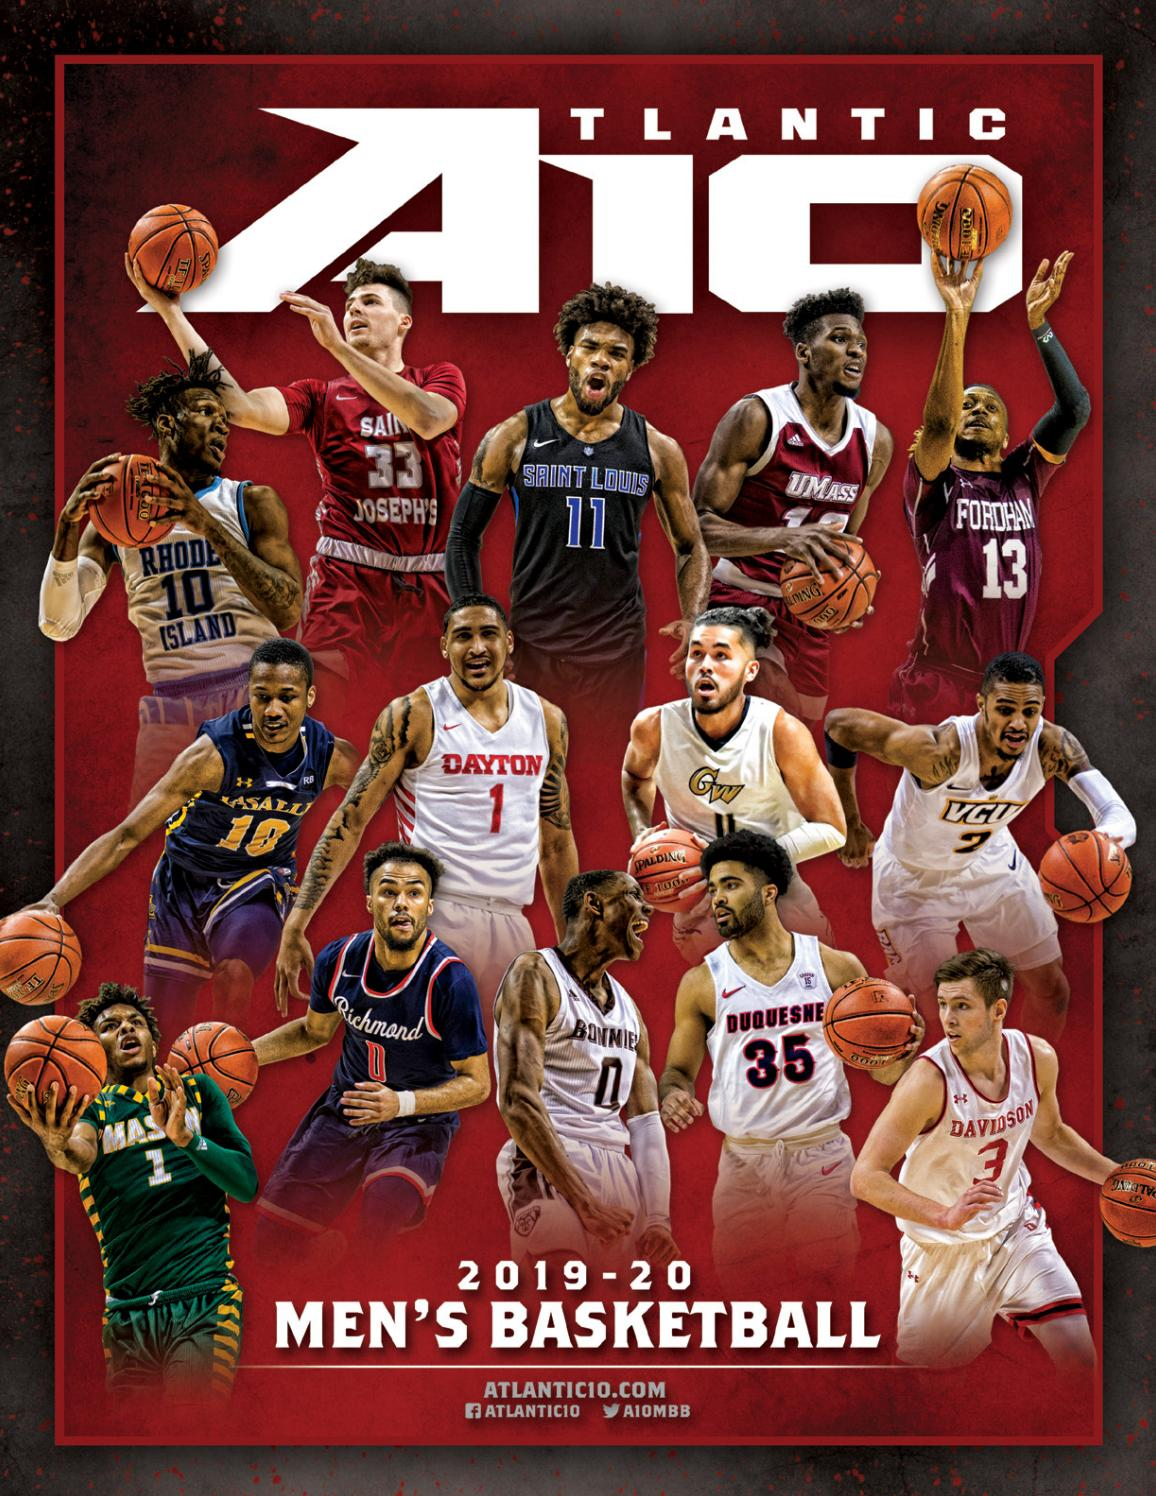 2019-20 Men's Basketball Media Guide by Atlantic 10 Conference - issuu